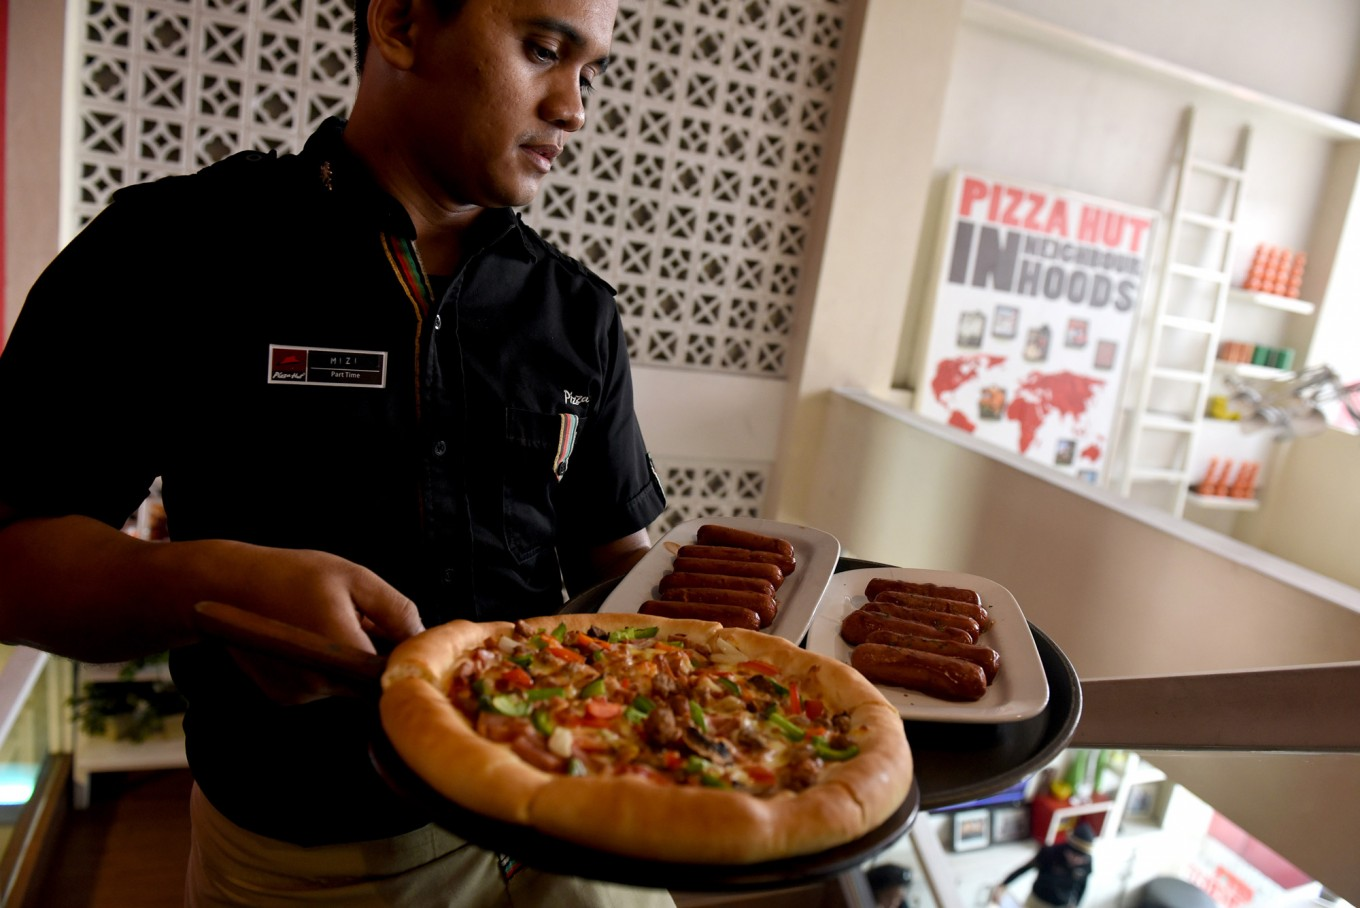 Pizza Hut franchisee books solid profit growth, eyes eastern expansion